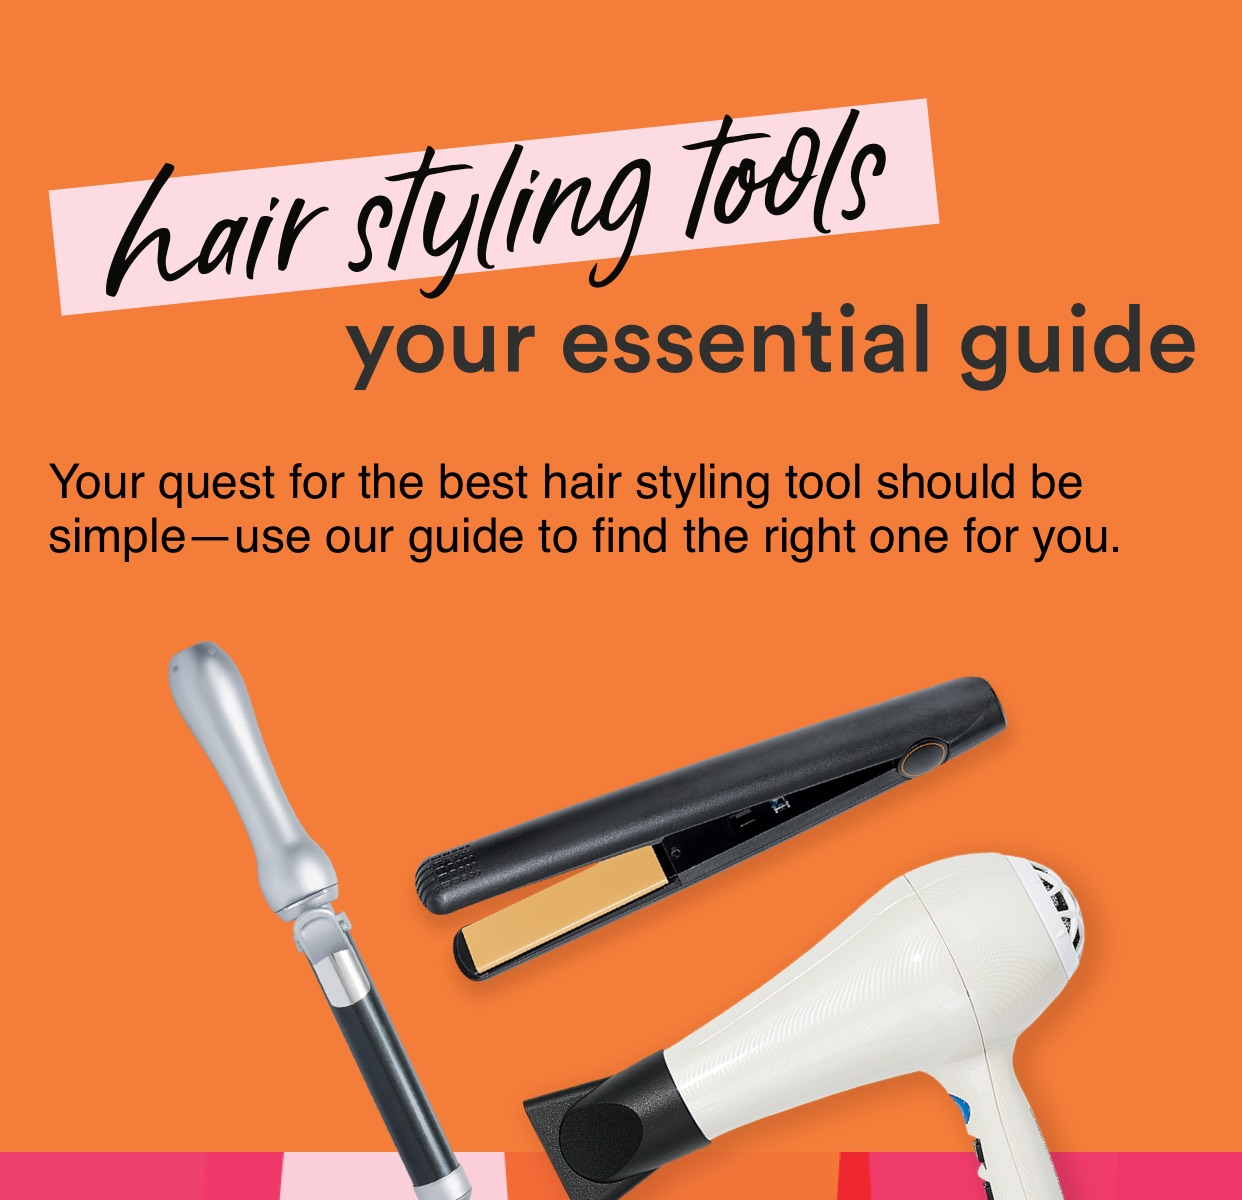 ulta hair styling tools hair styling tools guide ulta 8127